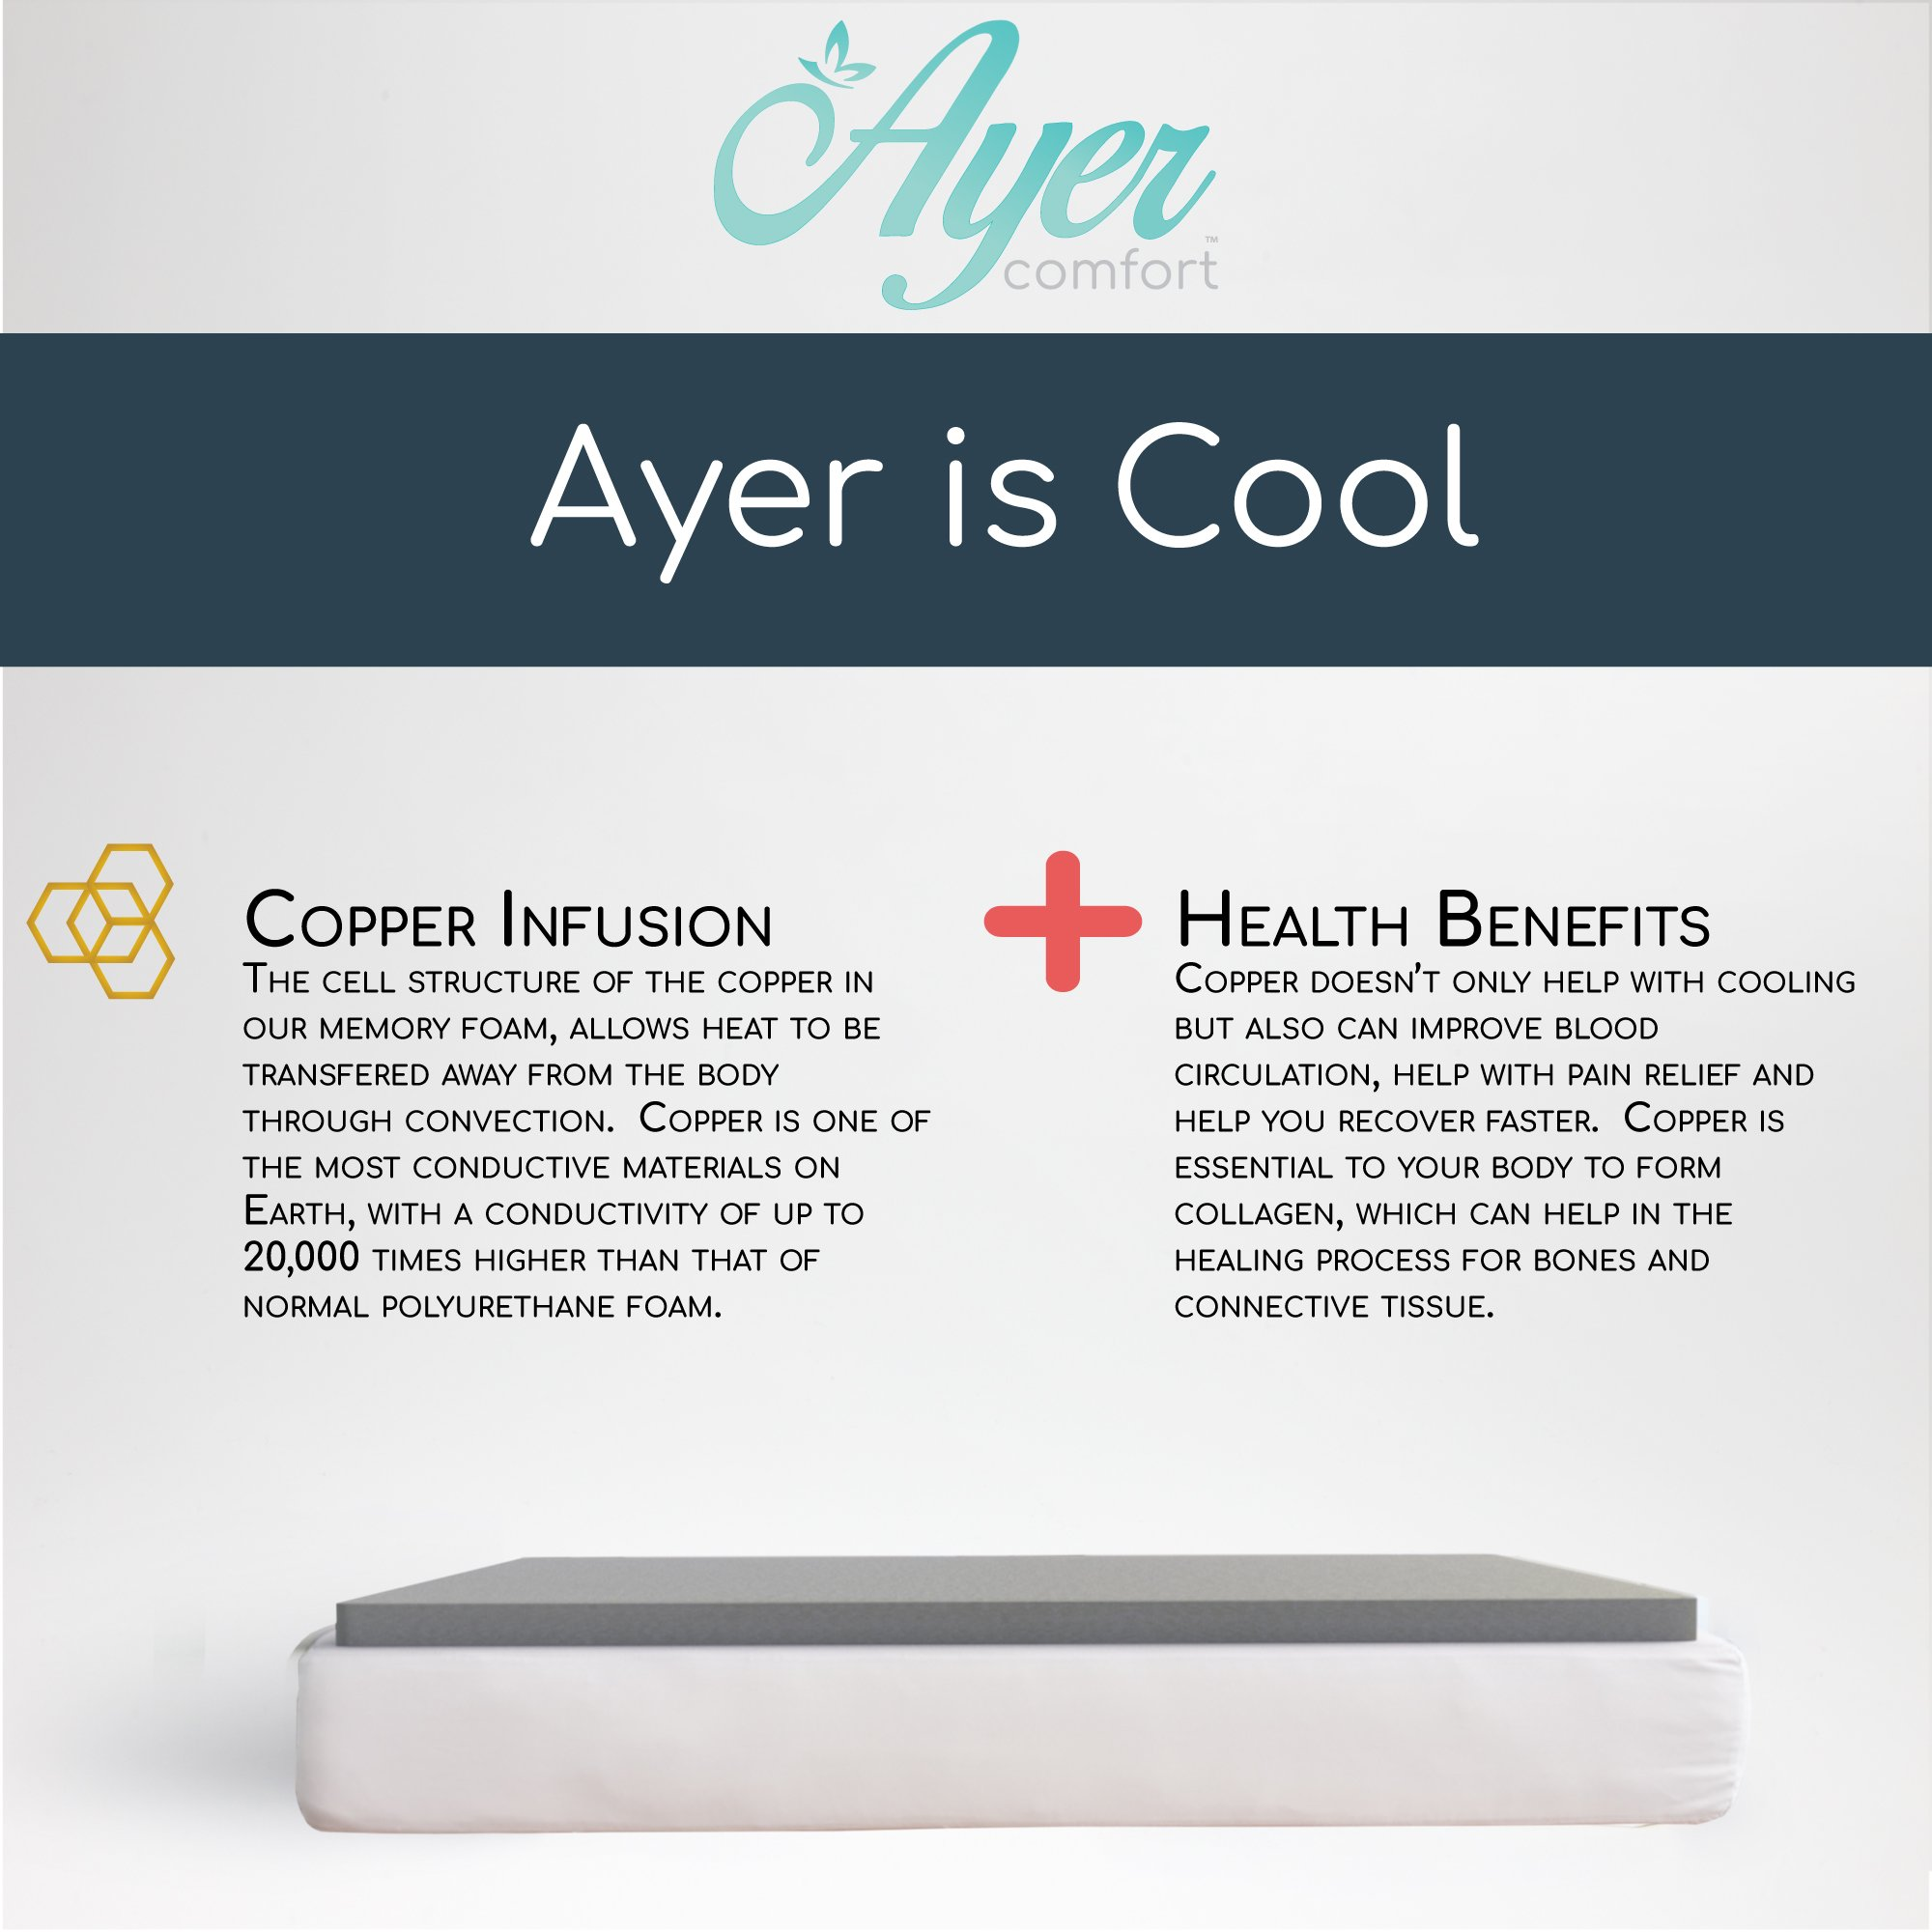 Ayer Comfort 3 Inch Copper Infused Memory Foam Mattress Topper Made in the USA - Twin by Ayer Comfort (Image #3)